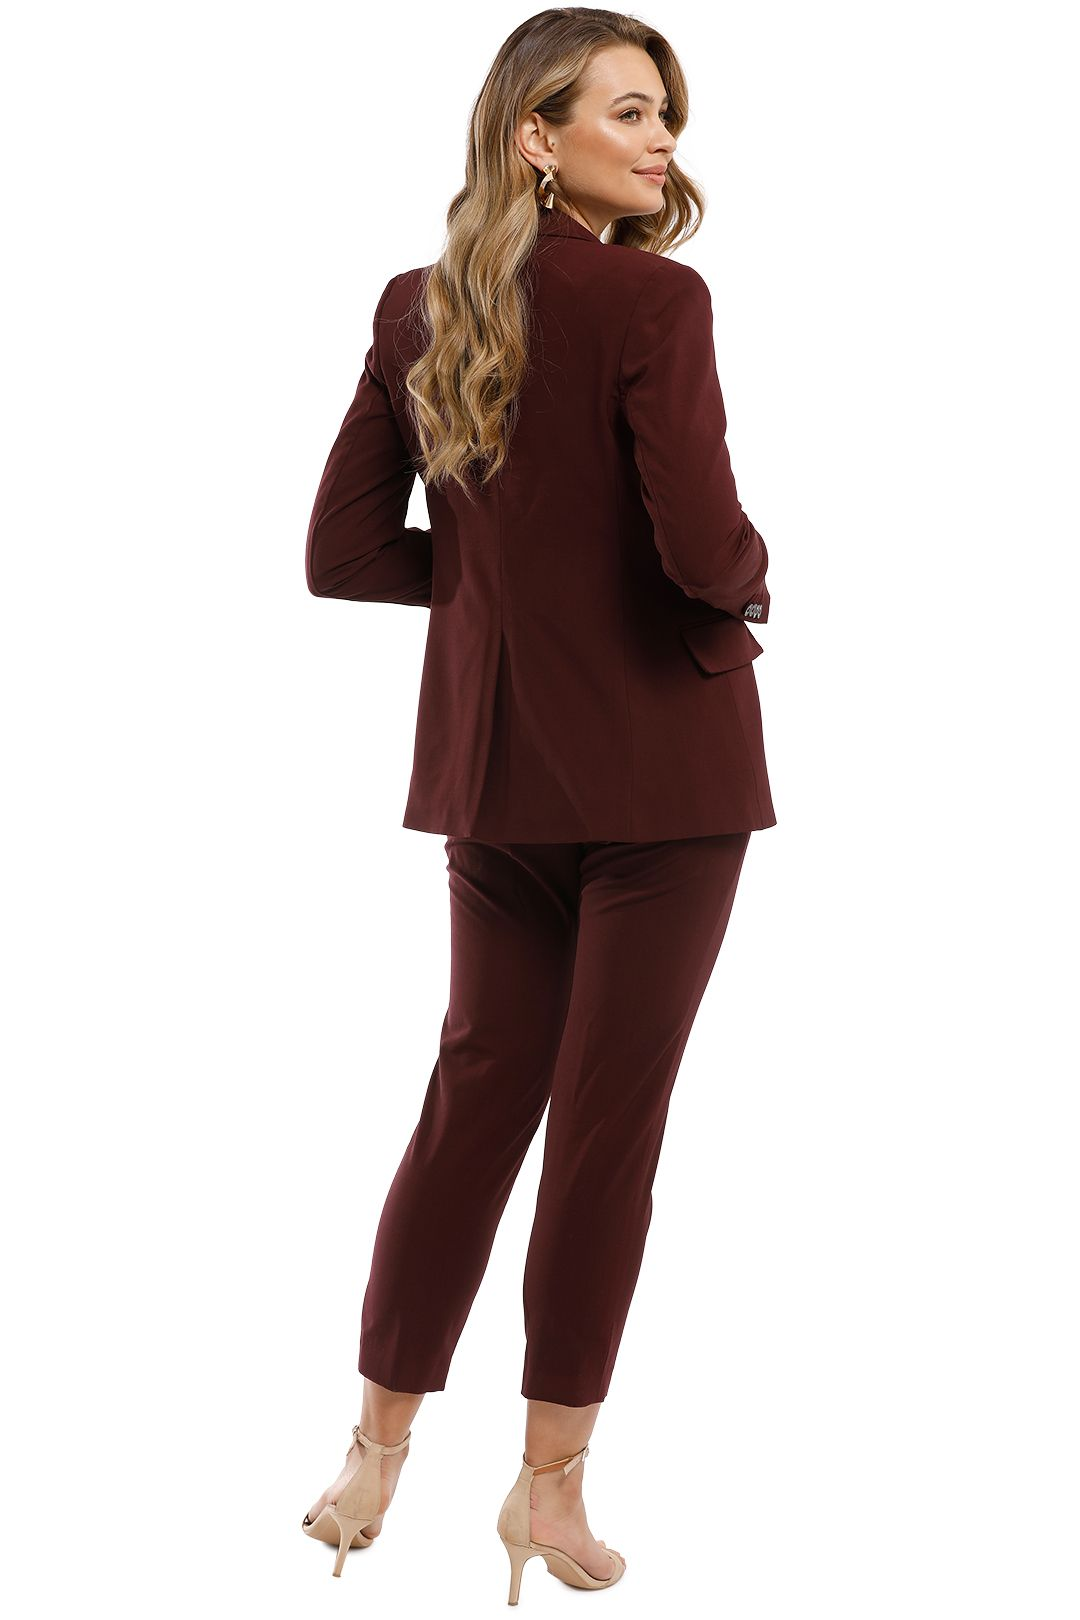 Theory - Essentials Jacket and Pant Set - Burgundy - Back